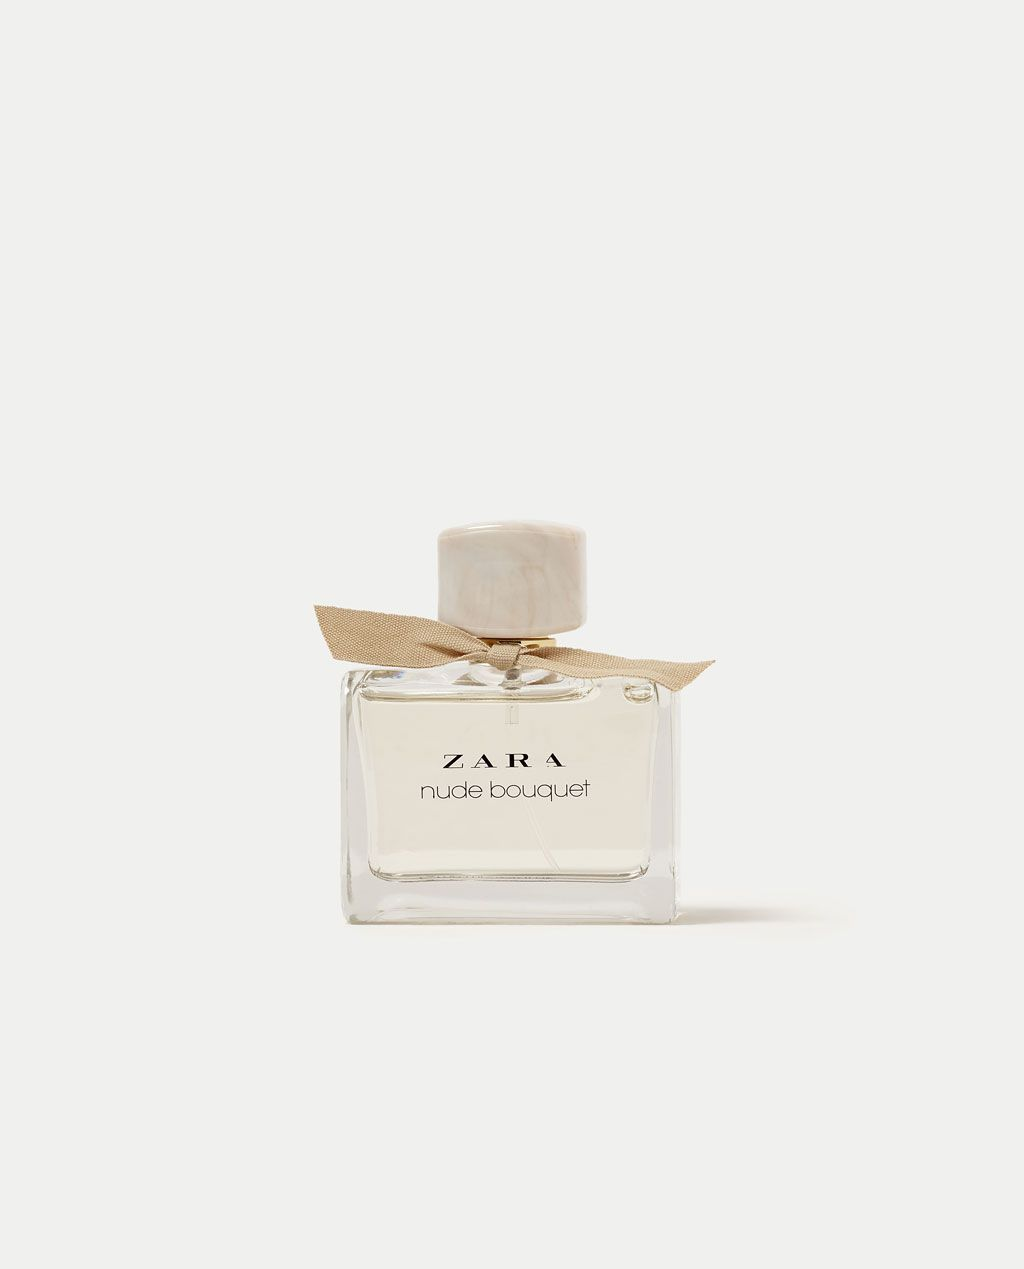 image 1 of zara nude bouquet eau de parfum 100 ml from zara wishlist 2 0 pinterest nude. Black Bedroom Furniture Sets. Home Design Ideas